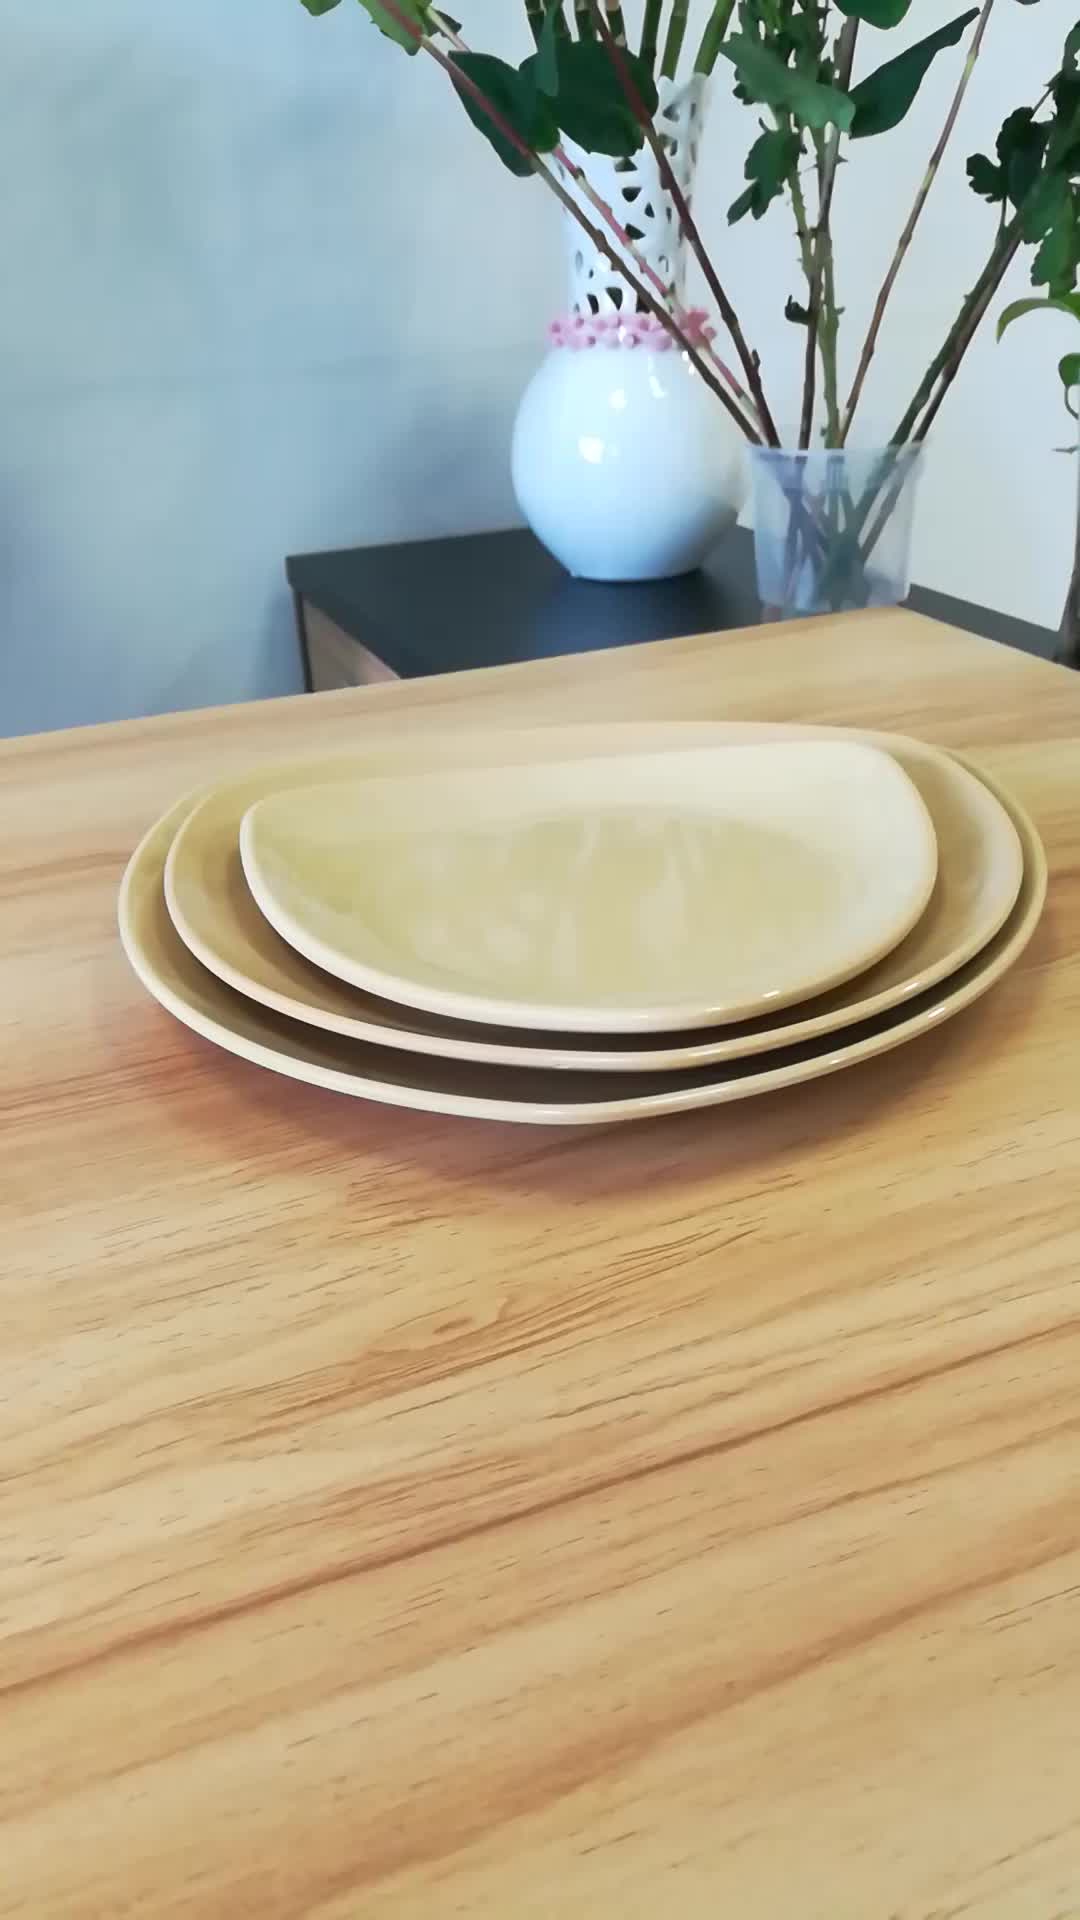 Triangle Bamboo Fiber Dinner Service Plate Sets 8.5' 9 10.5' Available FDA